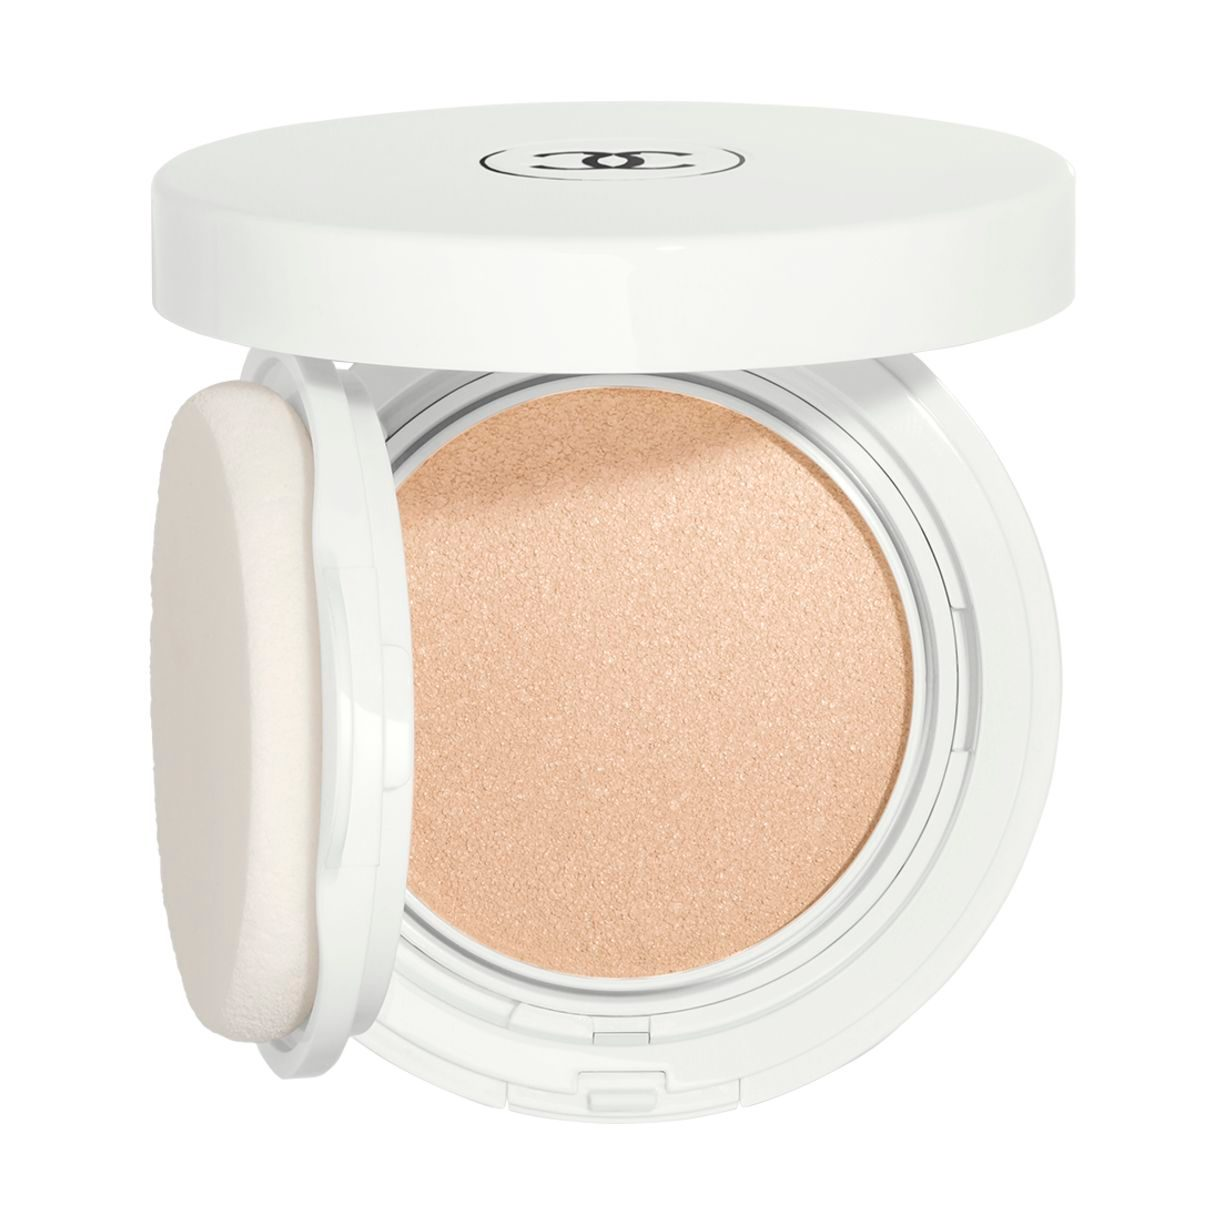 LE BLANC OIL-IN-CREAM COMPACT FOUNDATION WHITENING – THERMAL COMFORT SPF 40 / PA ++ 10 - BEIGE